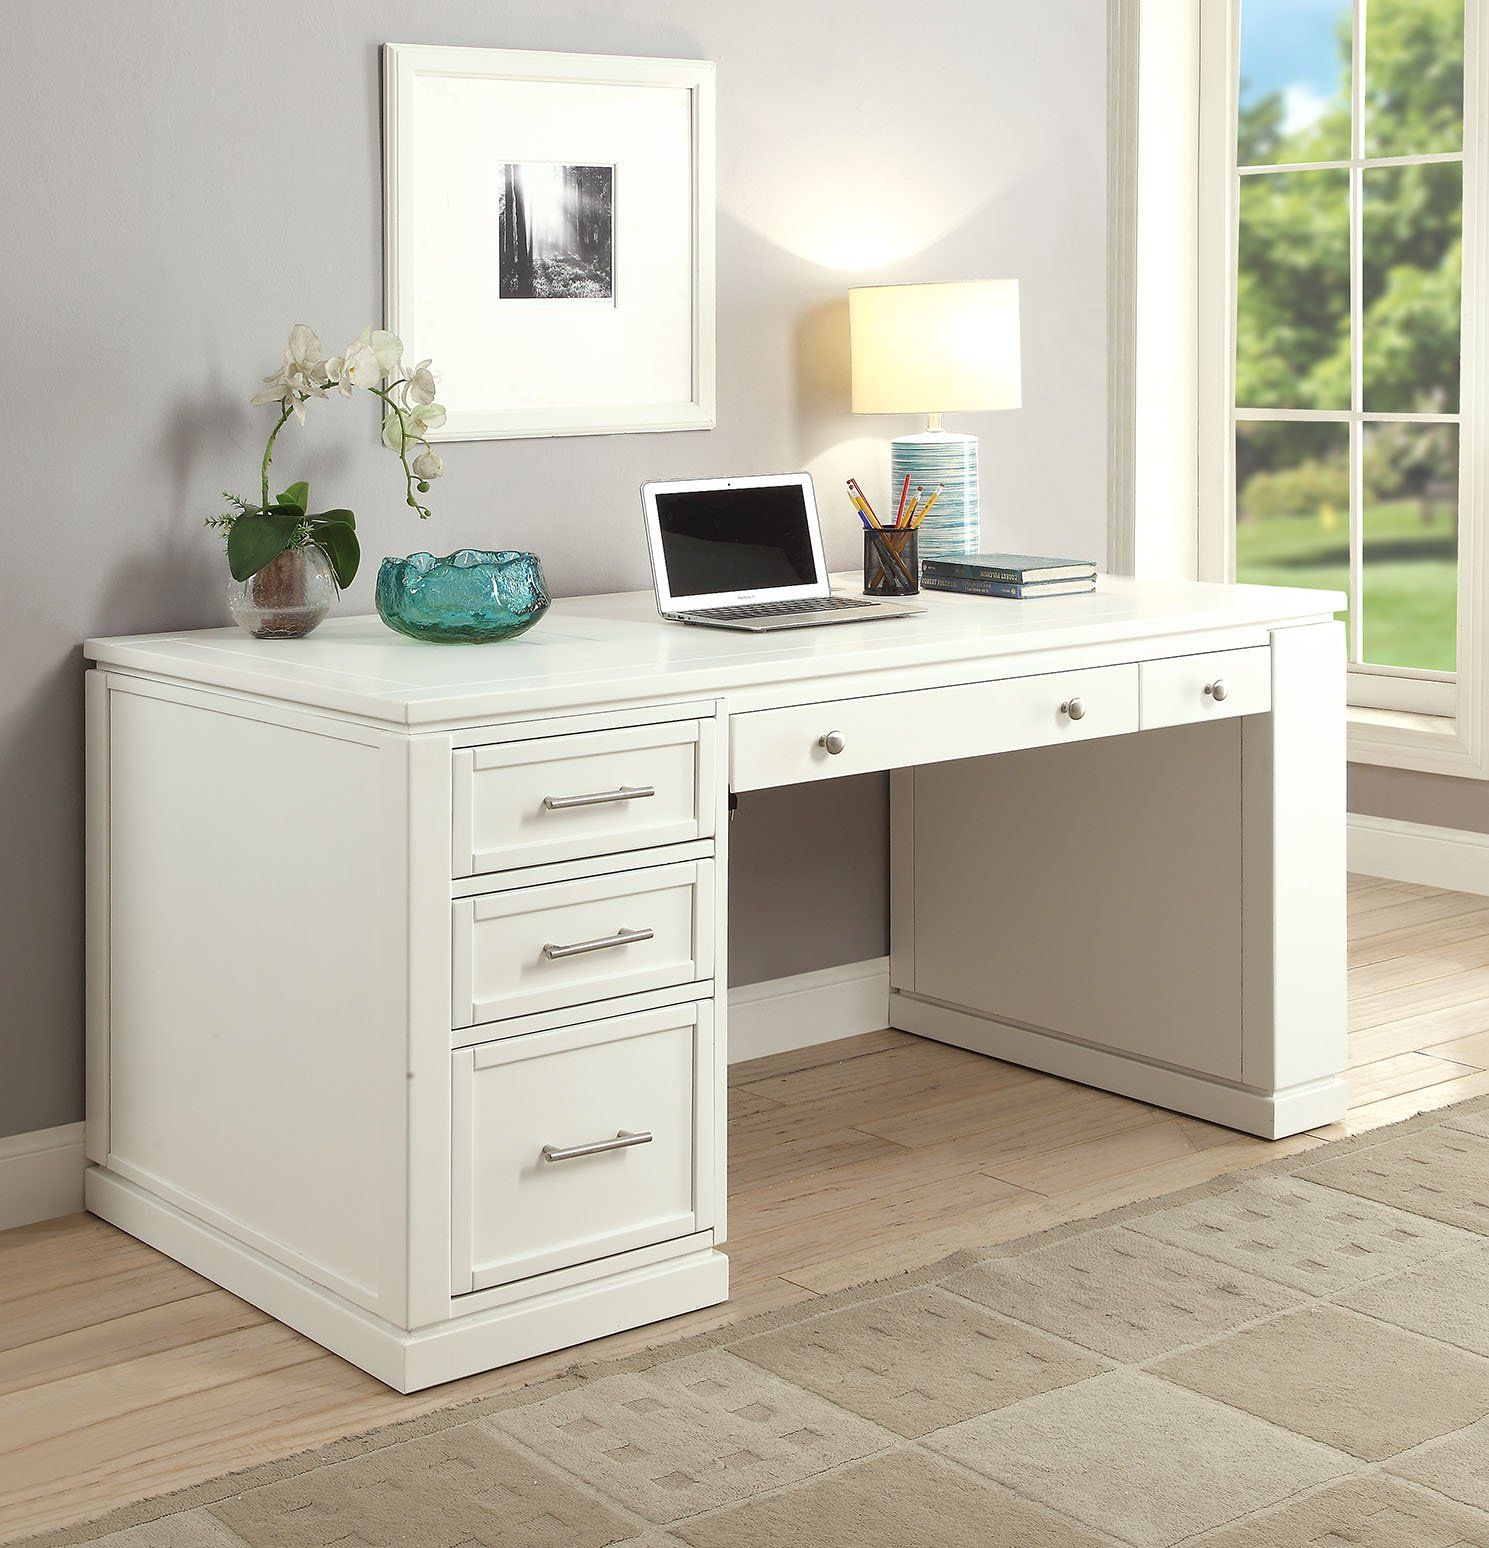 White Modern Office Desk Catalina Rc Willey Furniture Store White Desk Office Modern Office Desk Cheap Office Furniture